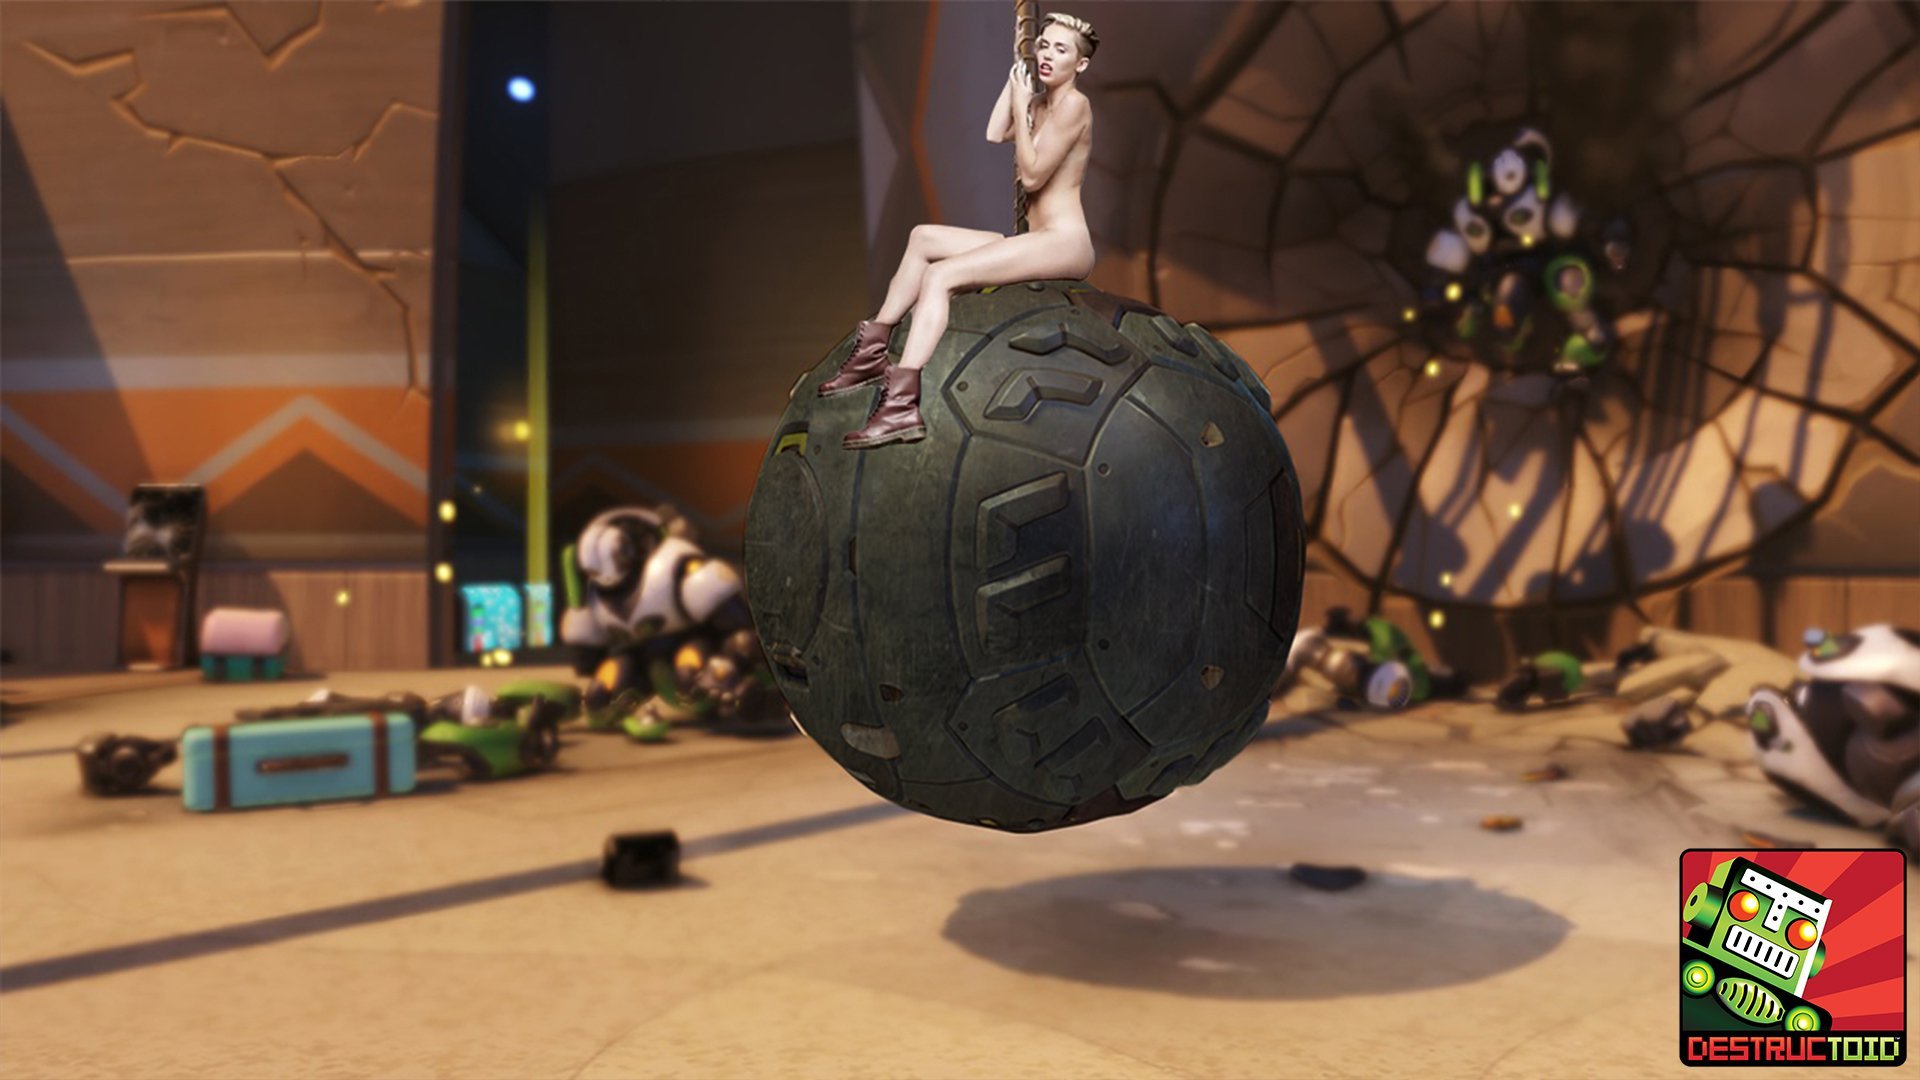 New Overwatch Hero Wrecking Ball Announced